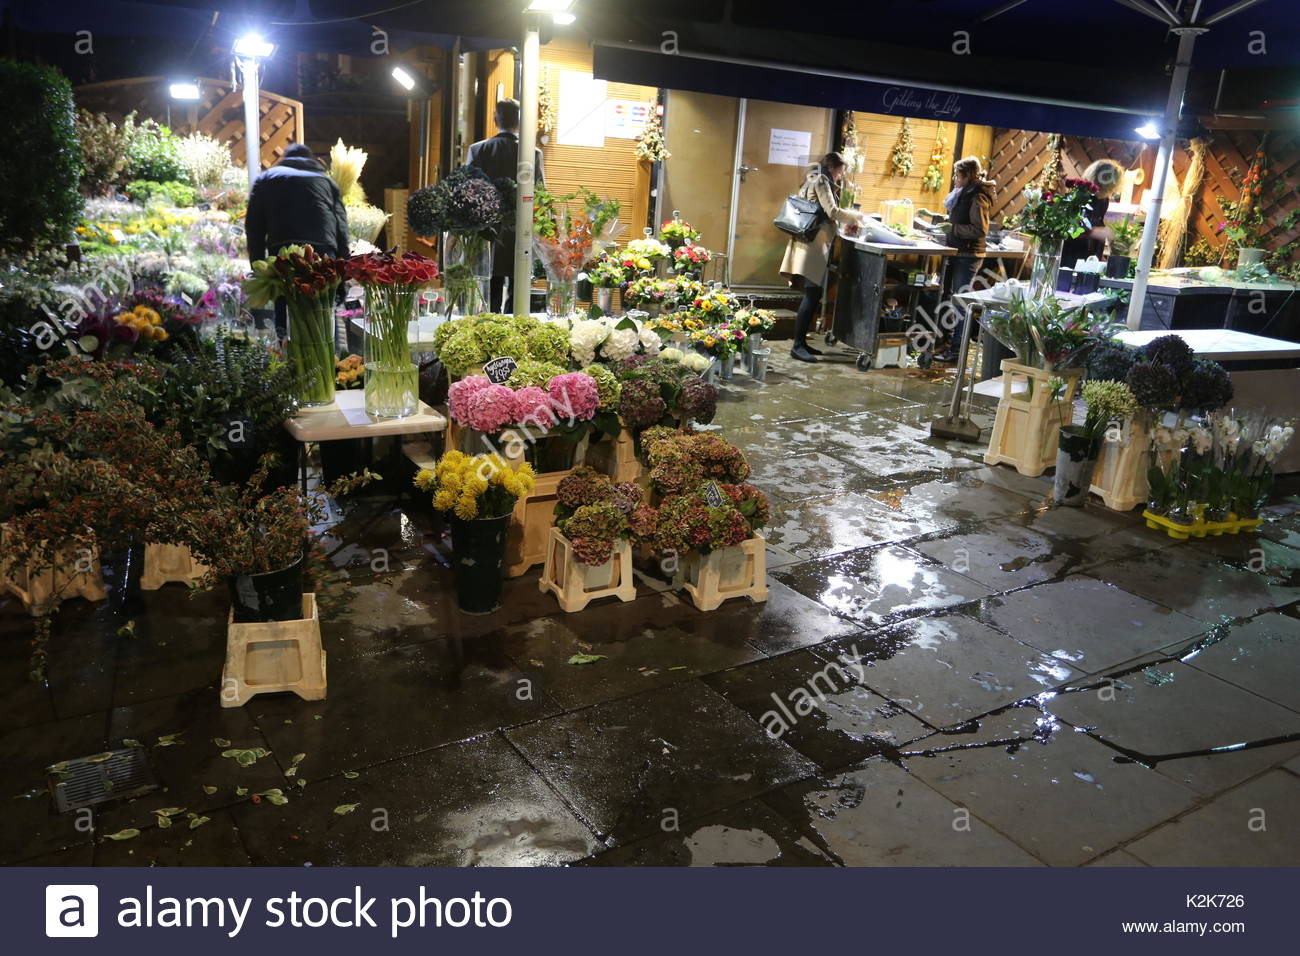 A display of flowers for sale at gilding the lily near the south a display of flowers for sale at gilding the lily near the south kensington tube station on october 13 2016 in london great britain united kingdom izmirmasajfo Image collections